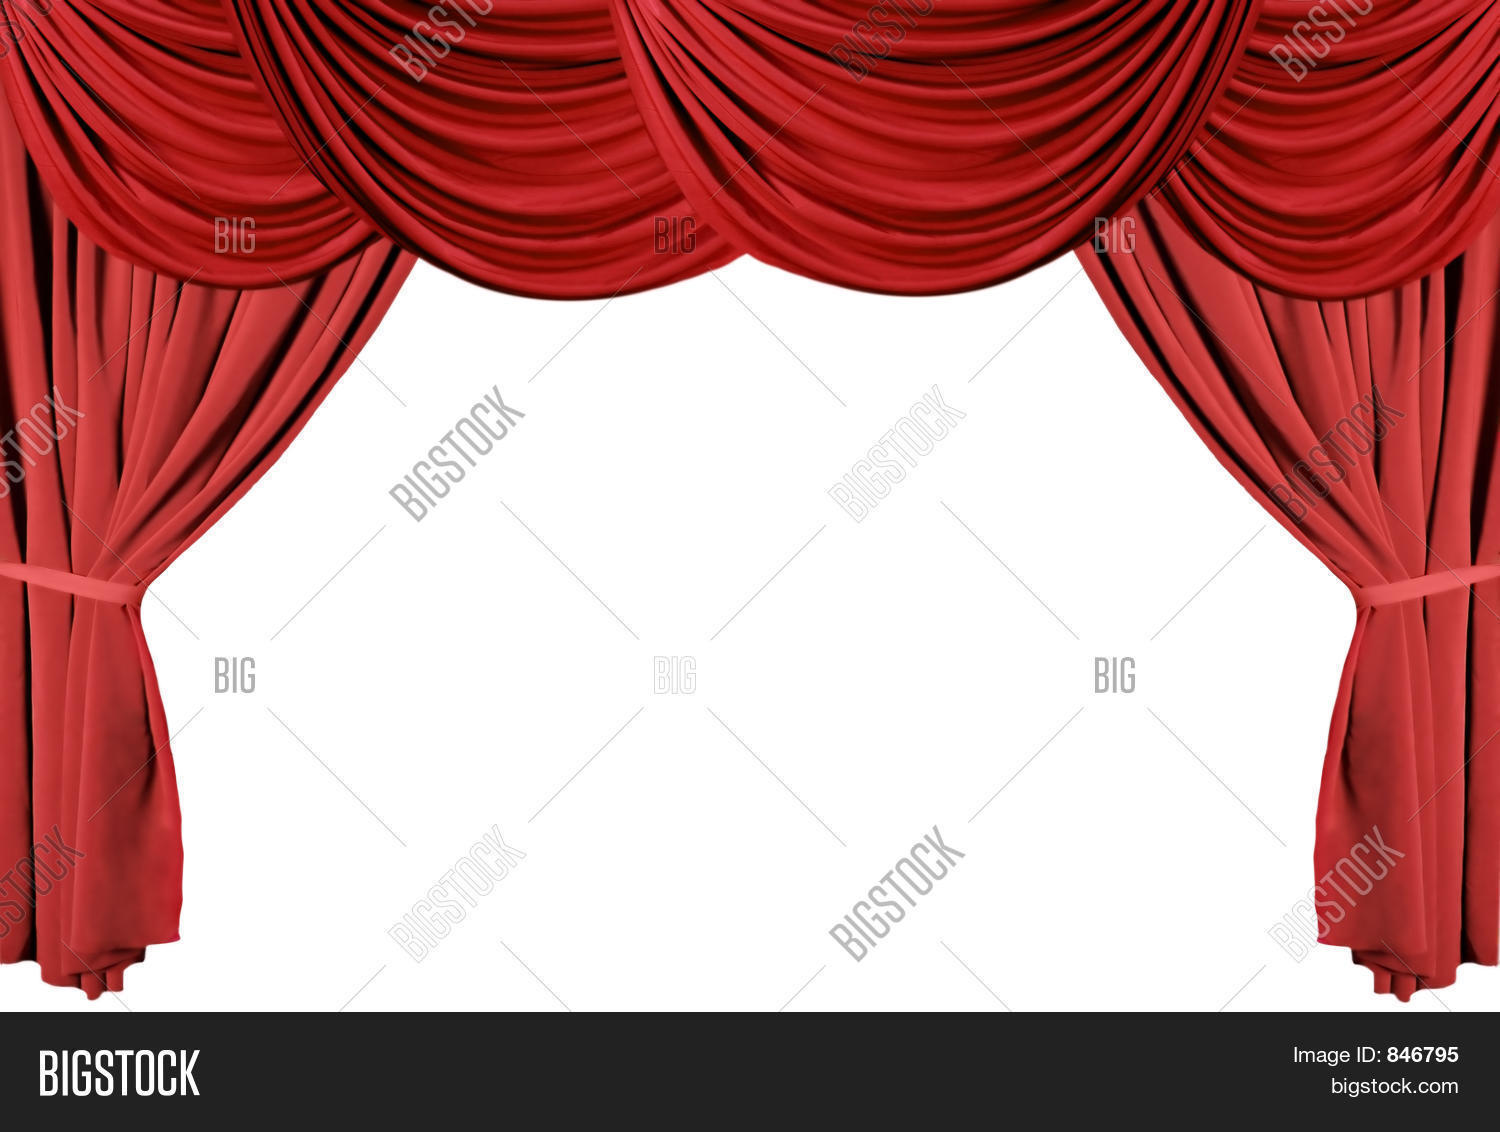 drapes stage panels and theater curtains home banner velvet